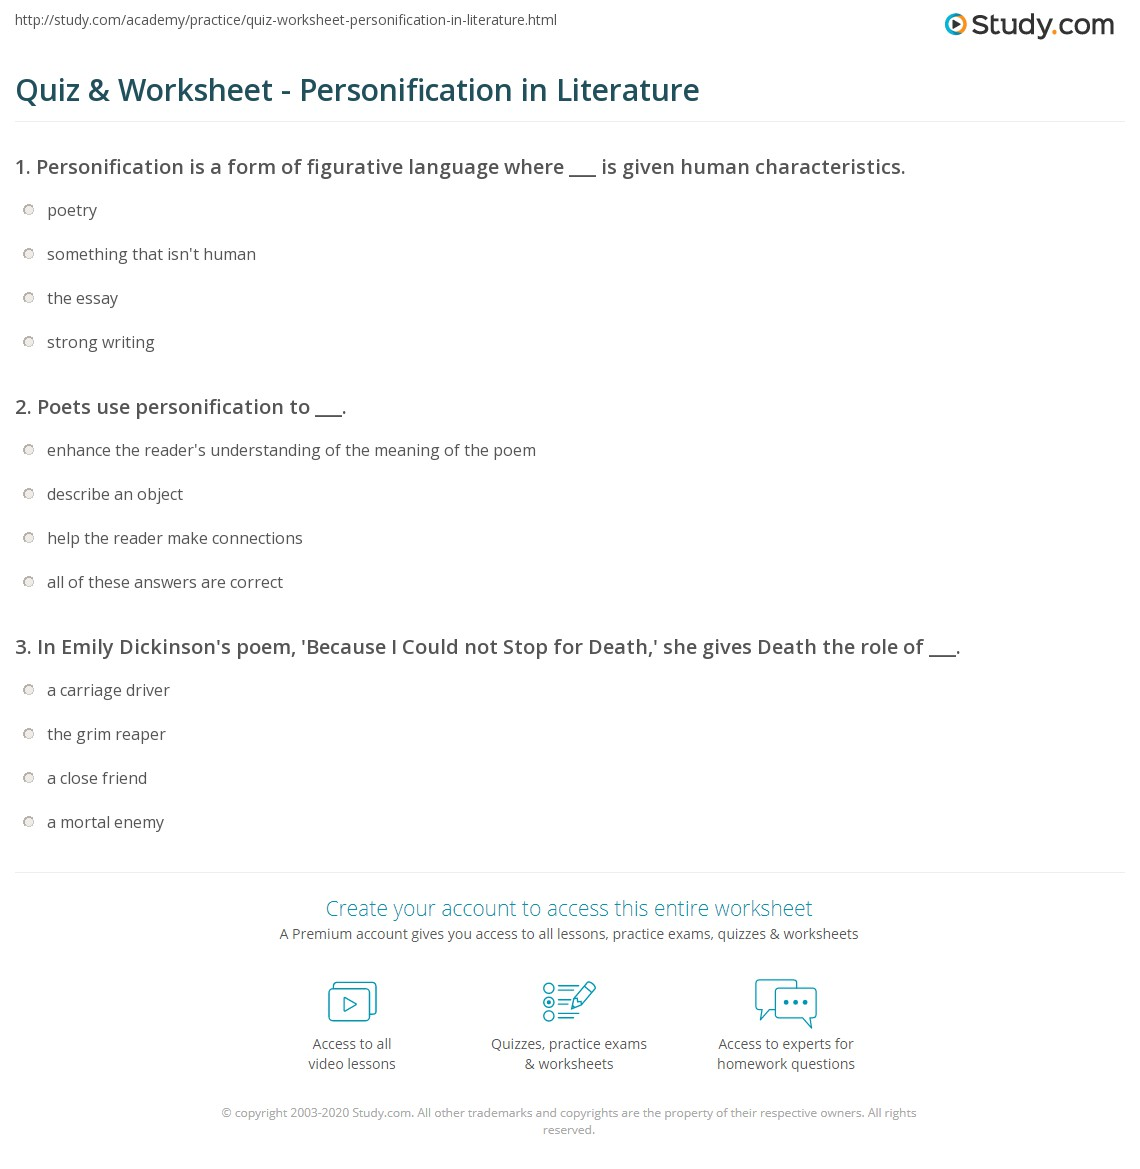 Worksheets Personification Worksheets quiz worksheet personification in literature study com print definition examples worksheet